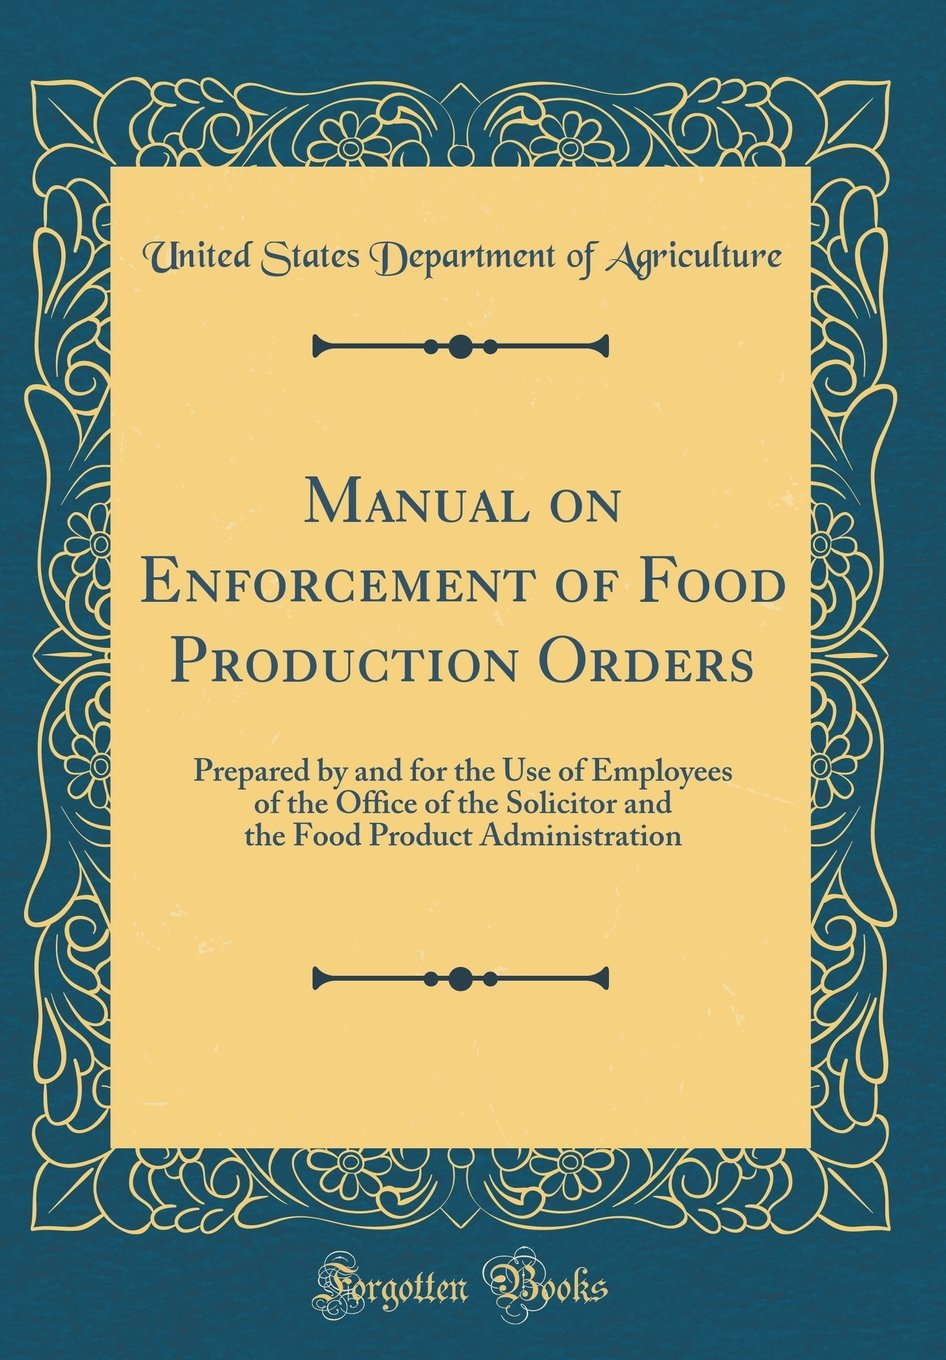 Manual on Enforcement of Food Production Orders: Prepared by and for the Use of Employees of the Office of the Solicitor and the Food Product Administration (Classic Reprint) ebook